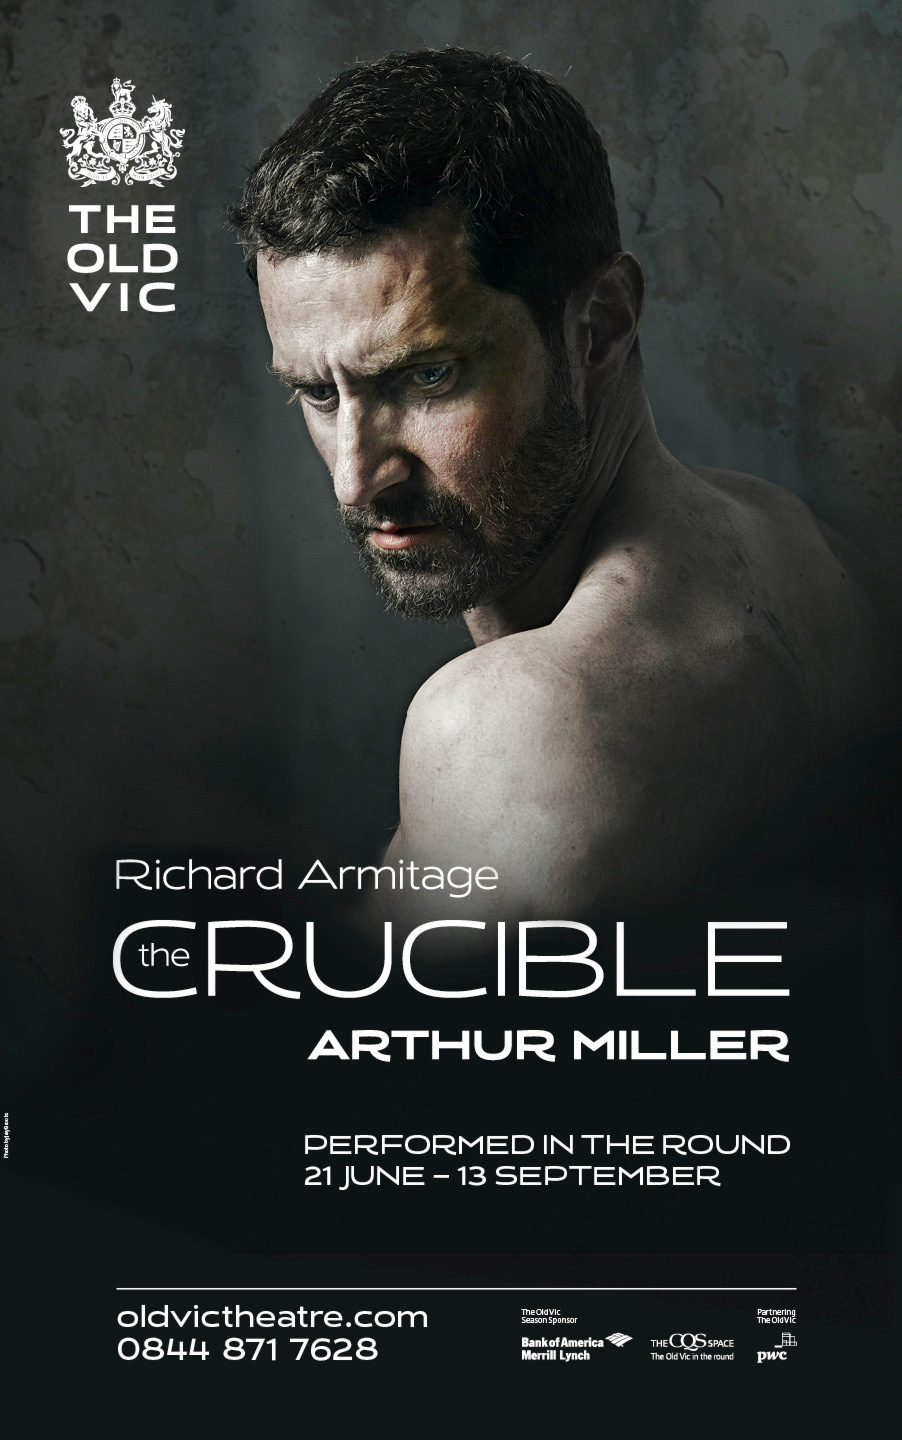 Richard Armitage The Crucible (right position)